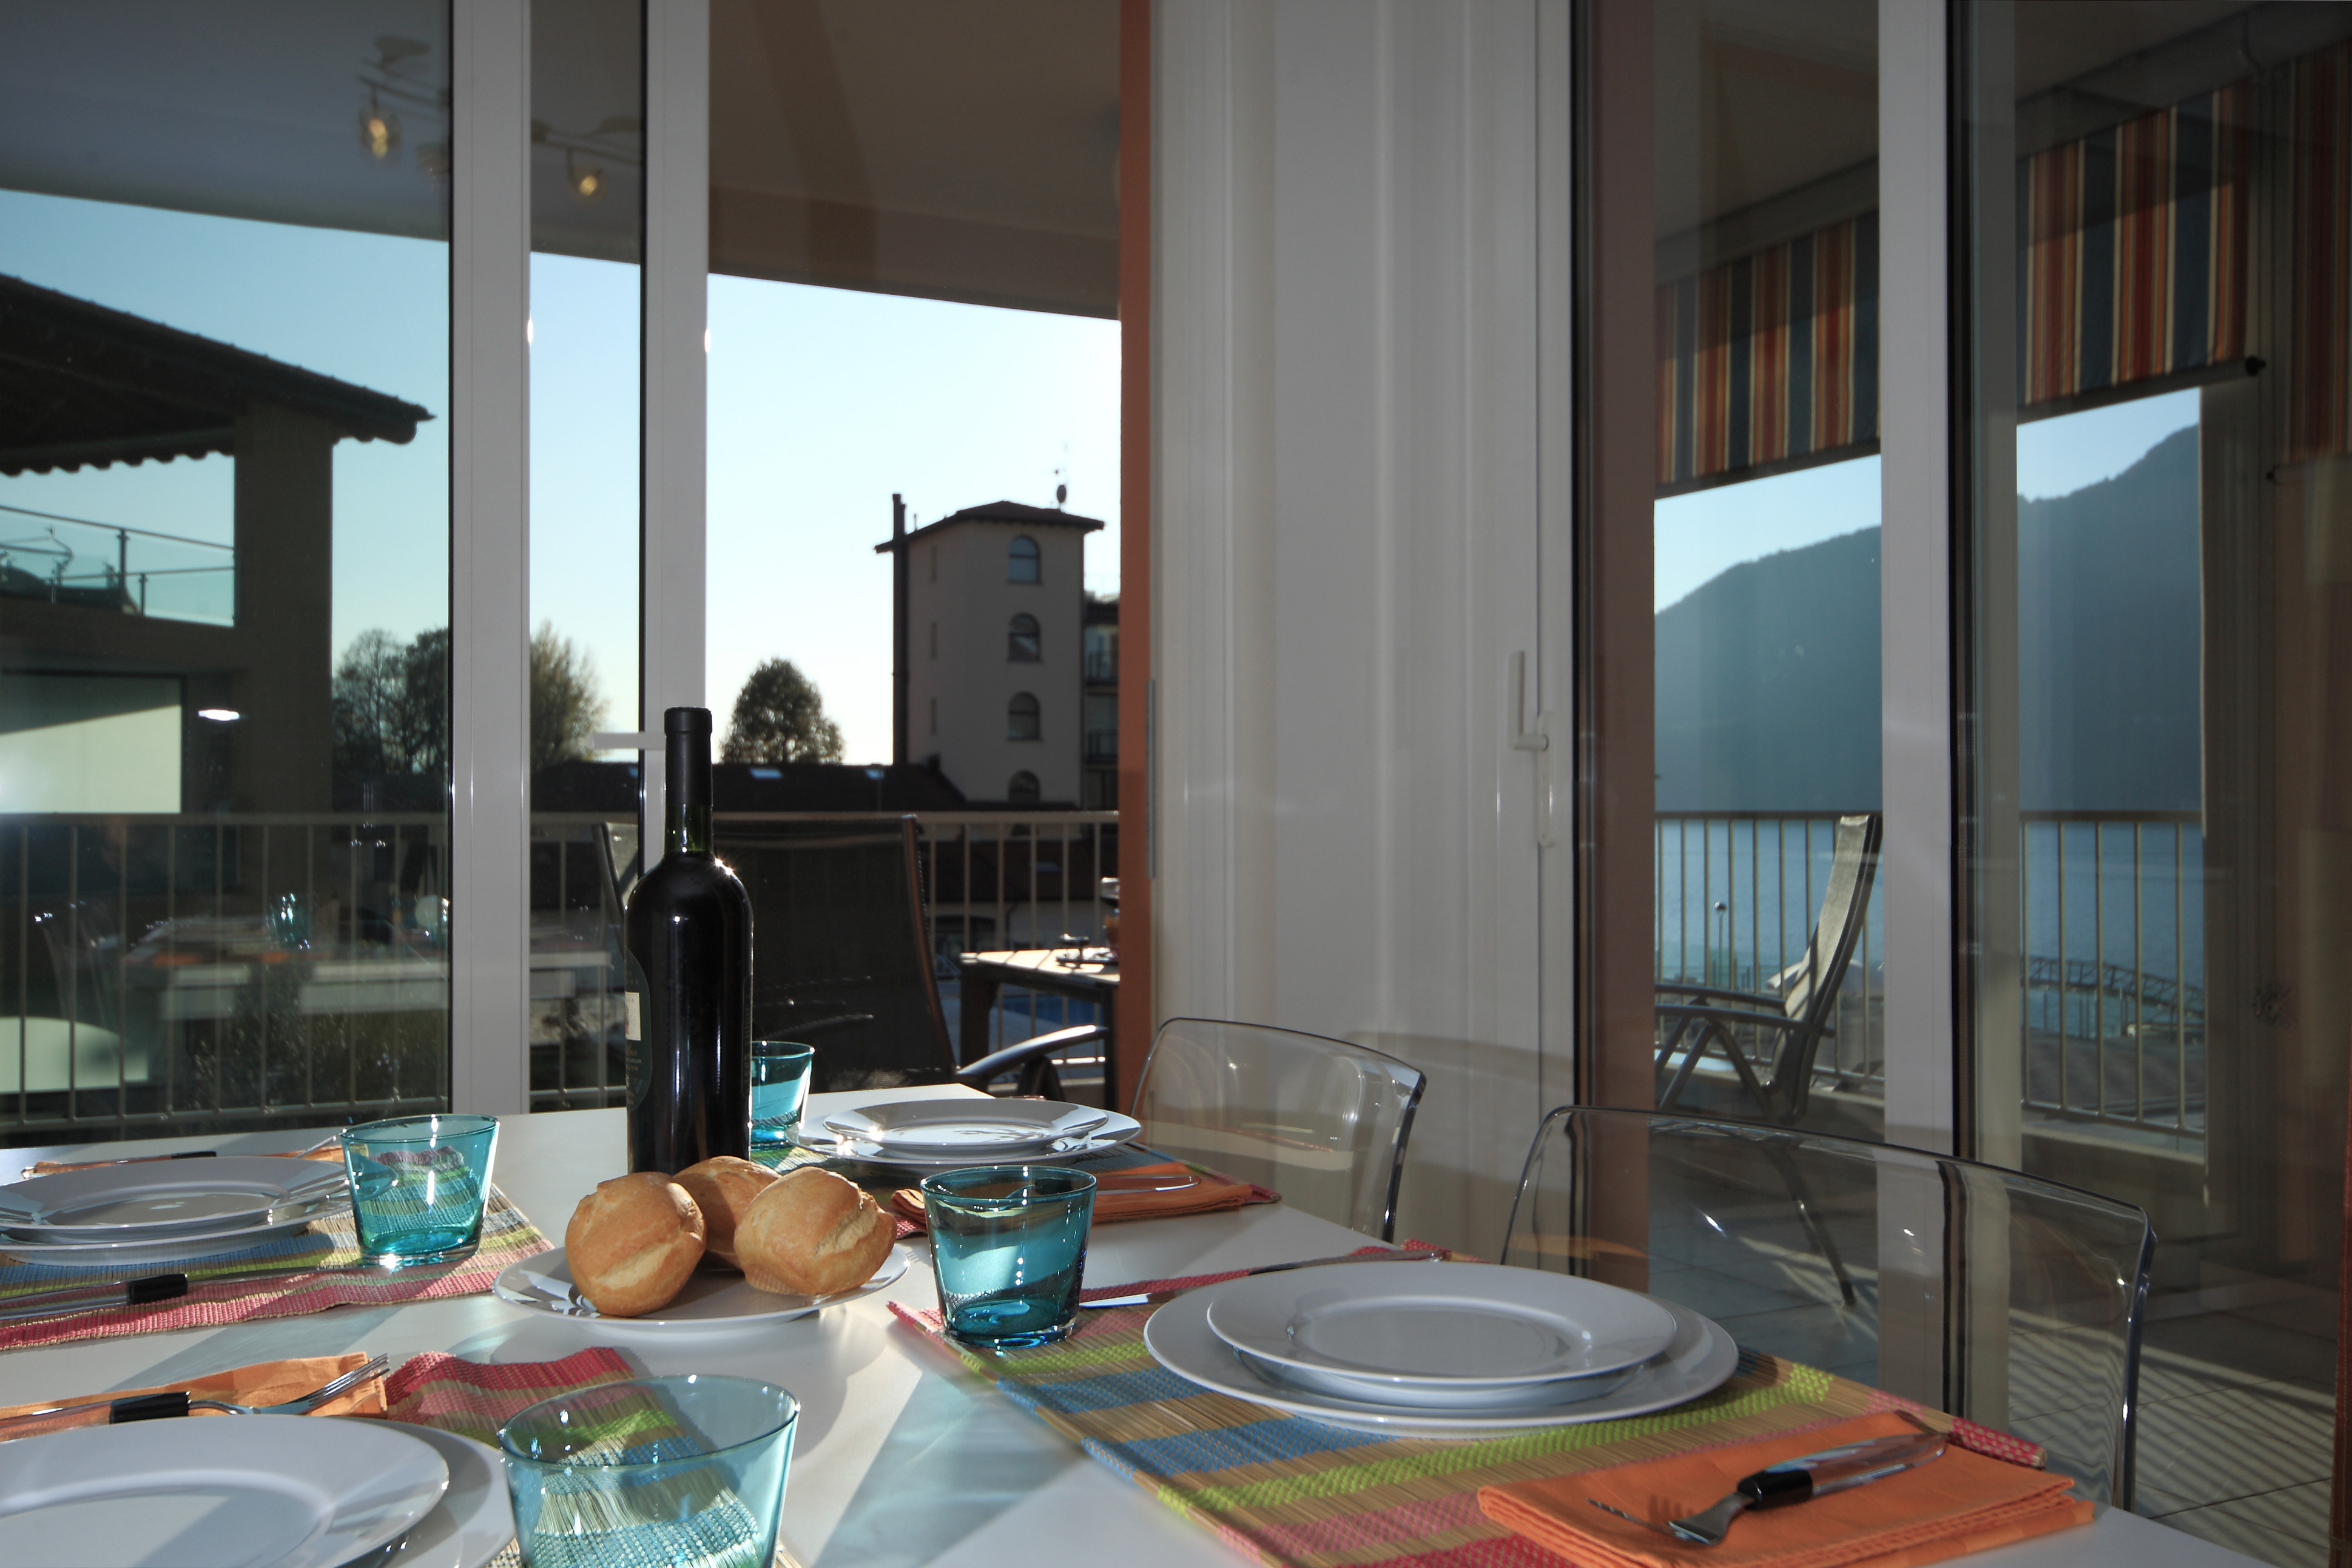 https://www.in-lombardia.it/sites/default/files/accomodation/gallery/105448/32268/vista_a113pg.jpg